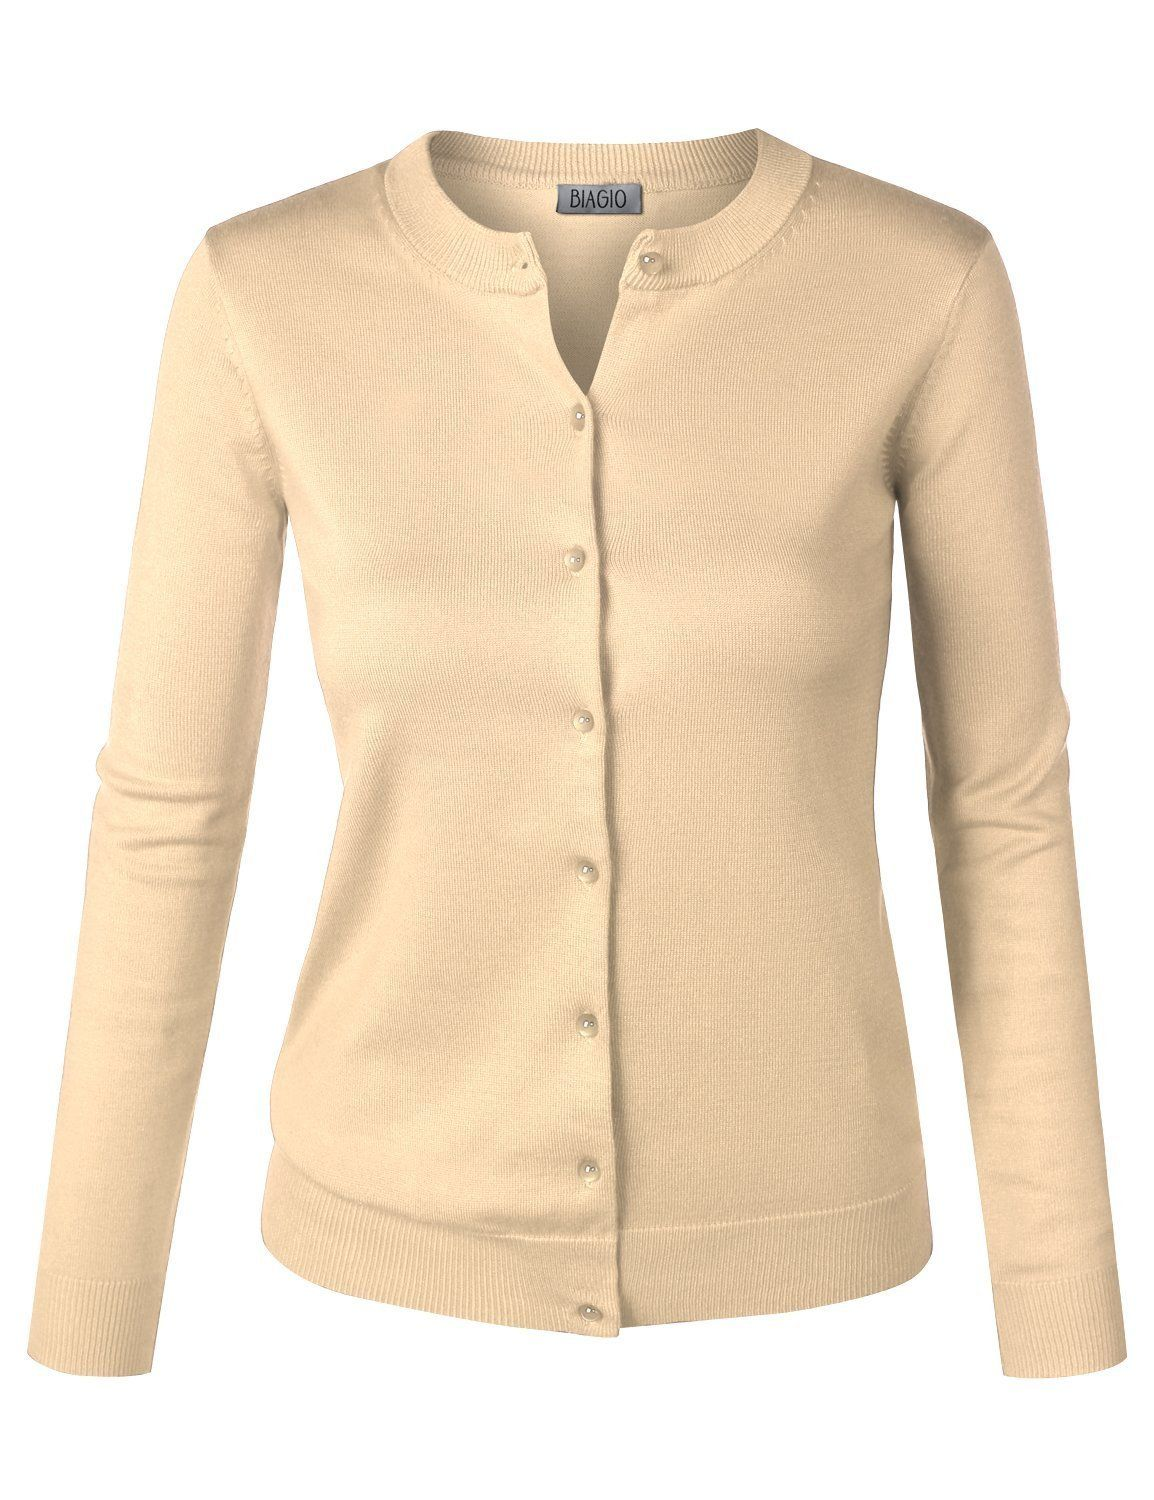 BIADANI Women Button Down Long Sleeve Soft Knit Cardigan Sweater ...